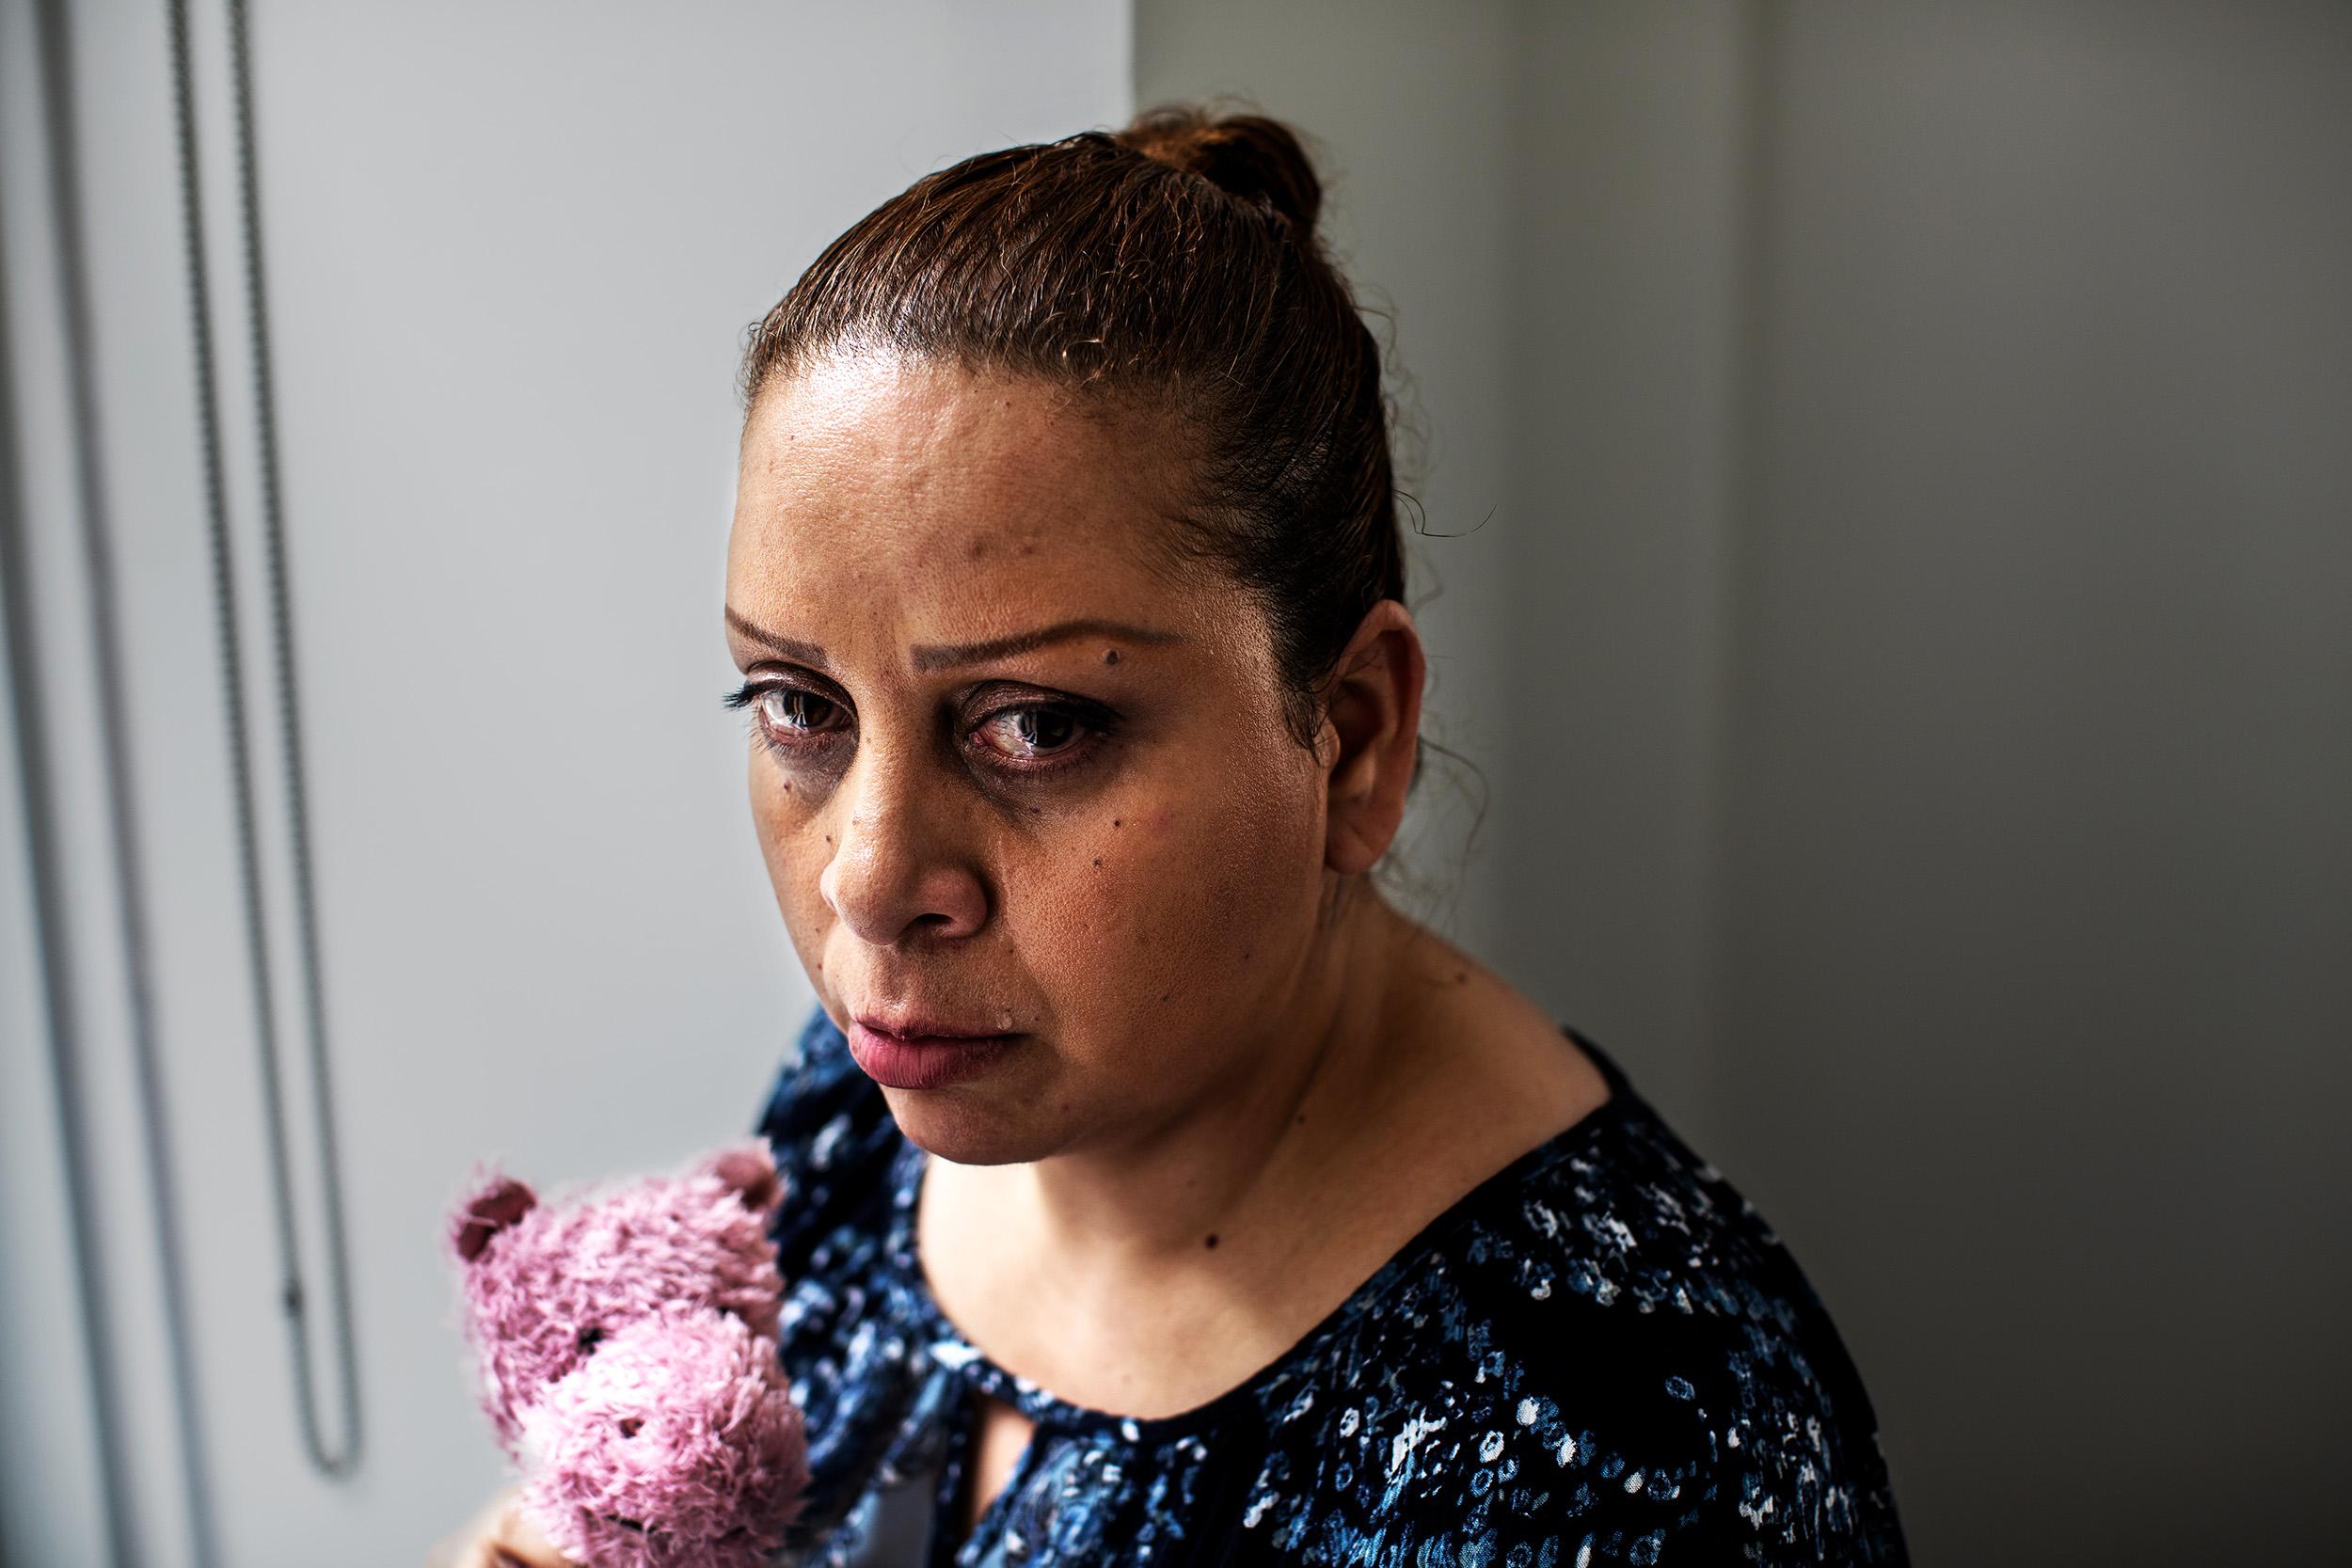 Barbara Melendez in Manhattan, New York. Barbara Melendez is a caretaker for her sister, an adult resident of the Union Avenue I.R.A Bronx facility. A 2016 civil rights lawsuit was filed on behalf of the sister and two other residents for abuse from employees at the facility.